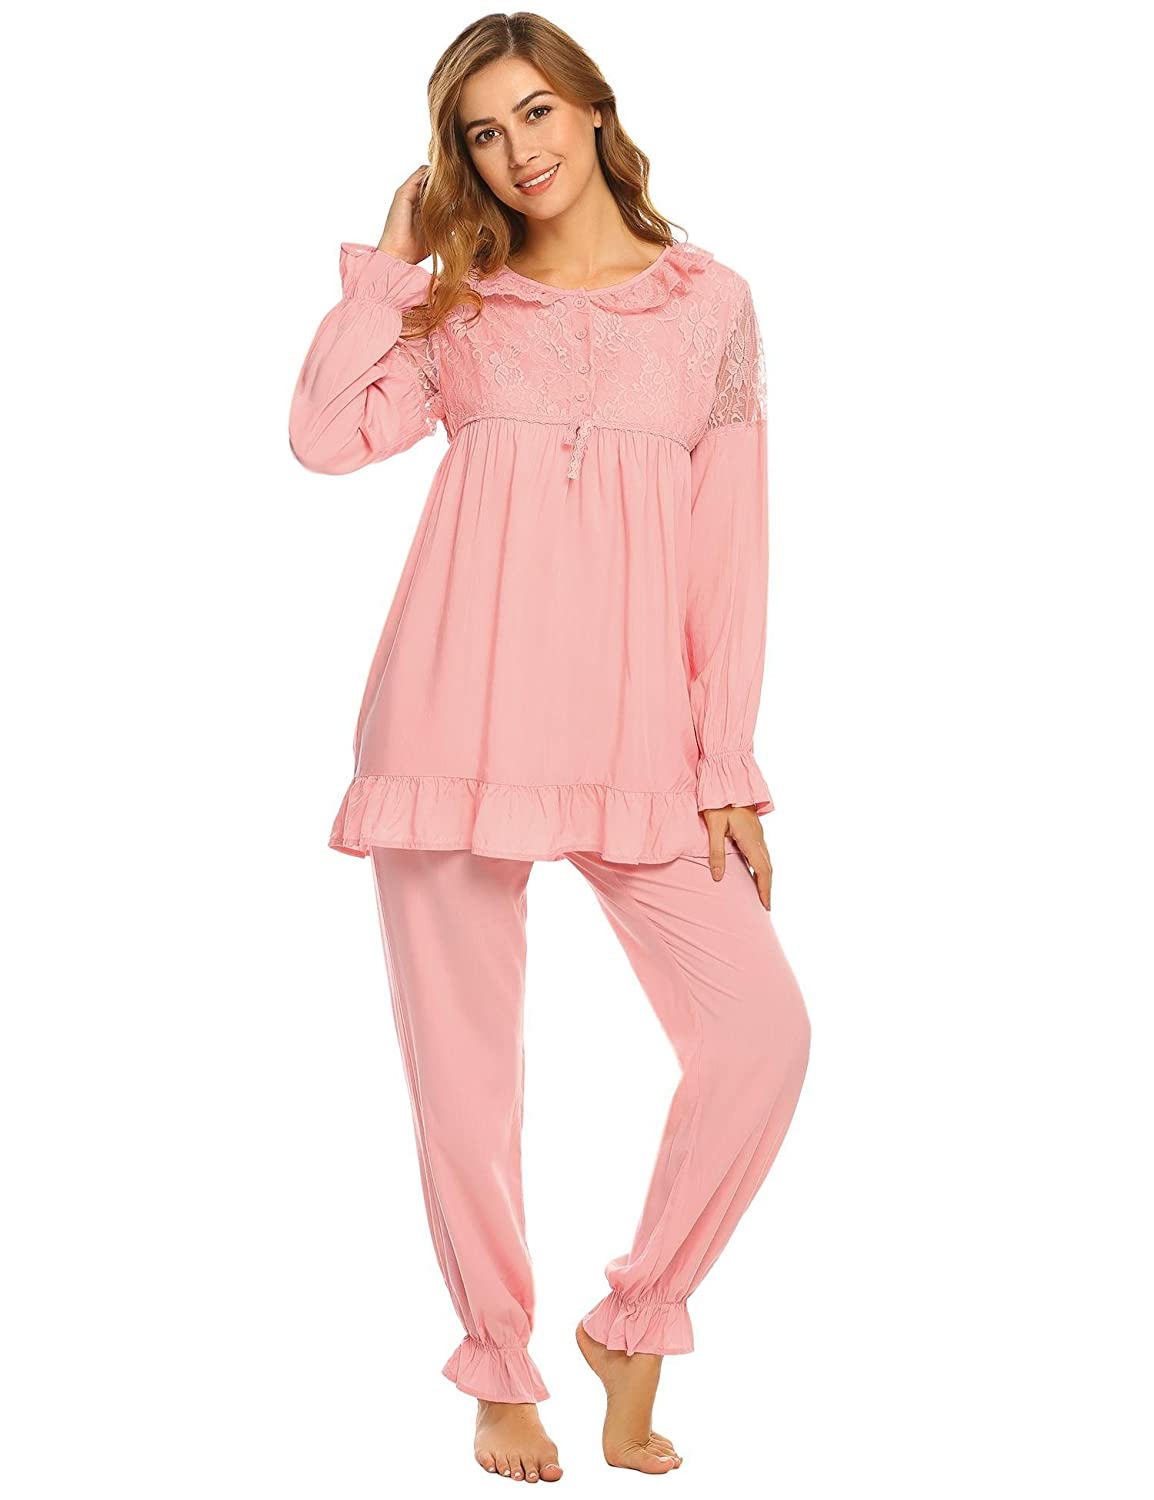 Vintage Inspired Nightgowns, Robes, Pajamas, Baby Dolls Goldenfox Womens Cotton Pjs Victorian Vintage Lace Patchwork Long Sleeve Pajama Set Sleepwear S-XXL $34.19 AT vintagedancer.com